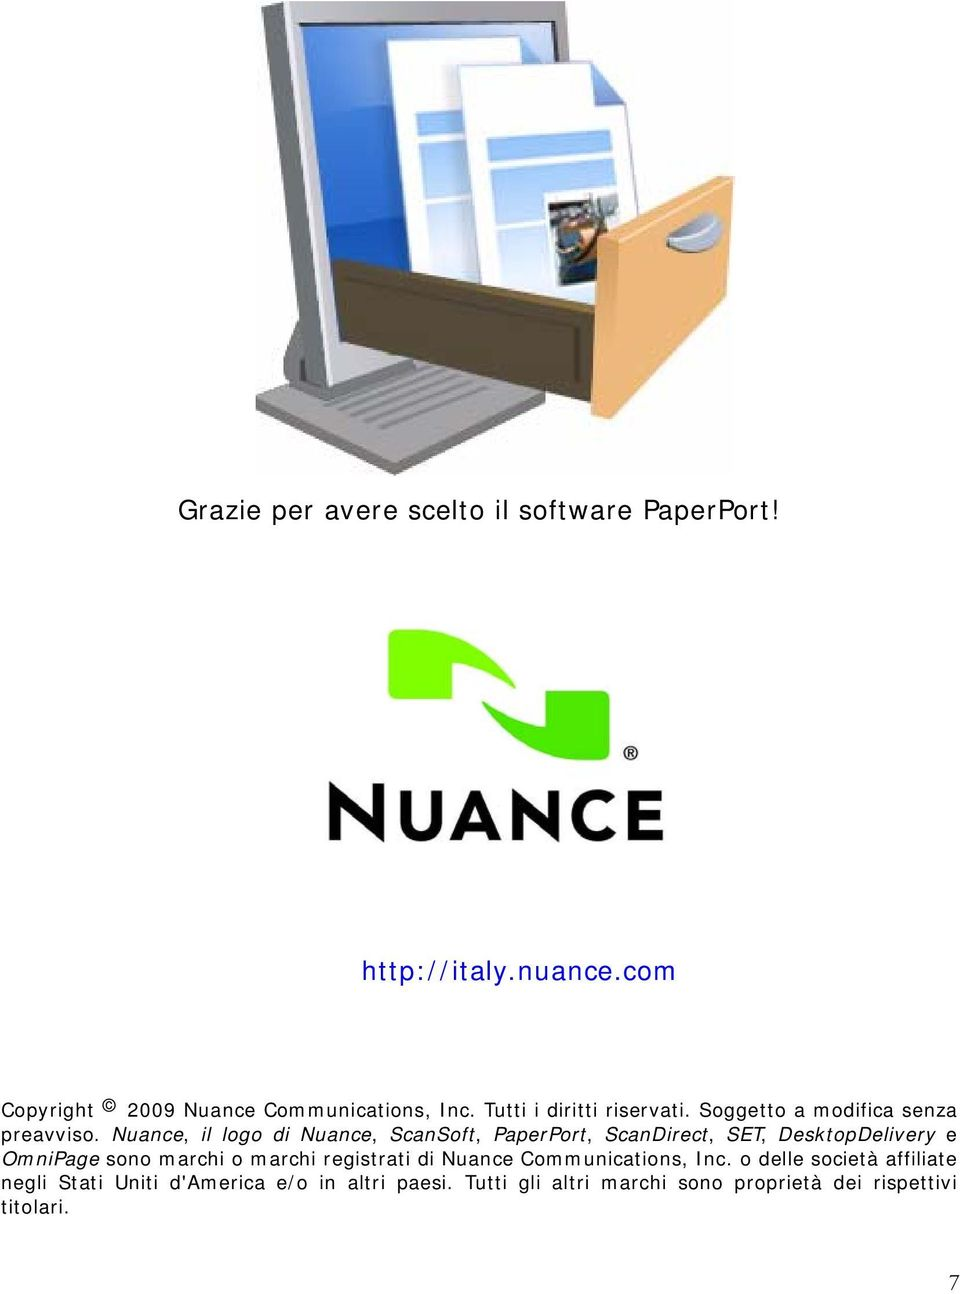 Nuance, il logo di Nuance, ScanSoft, PaperPort, ScanDirect, SET, DesktopDelivery e OmniPage sono marchi o marchi